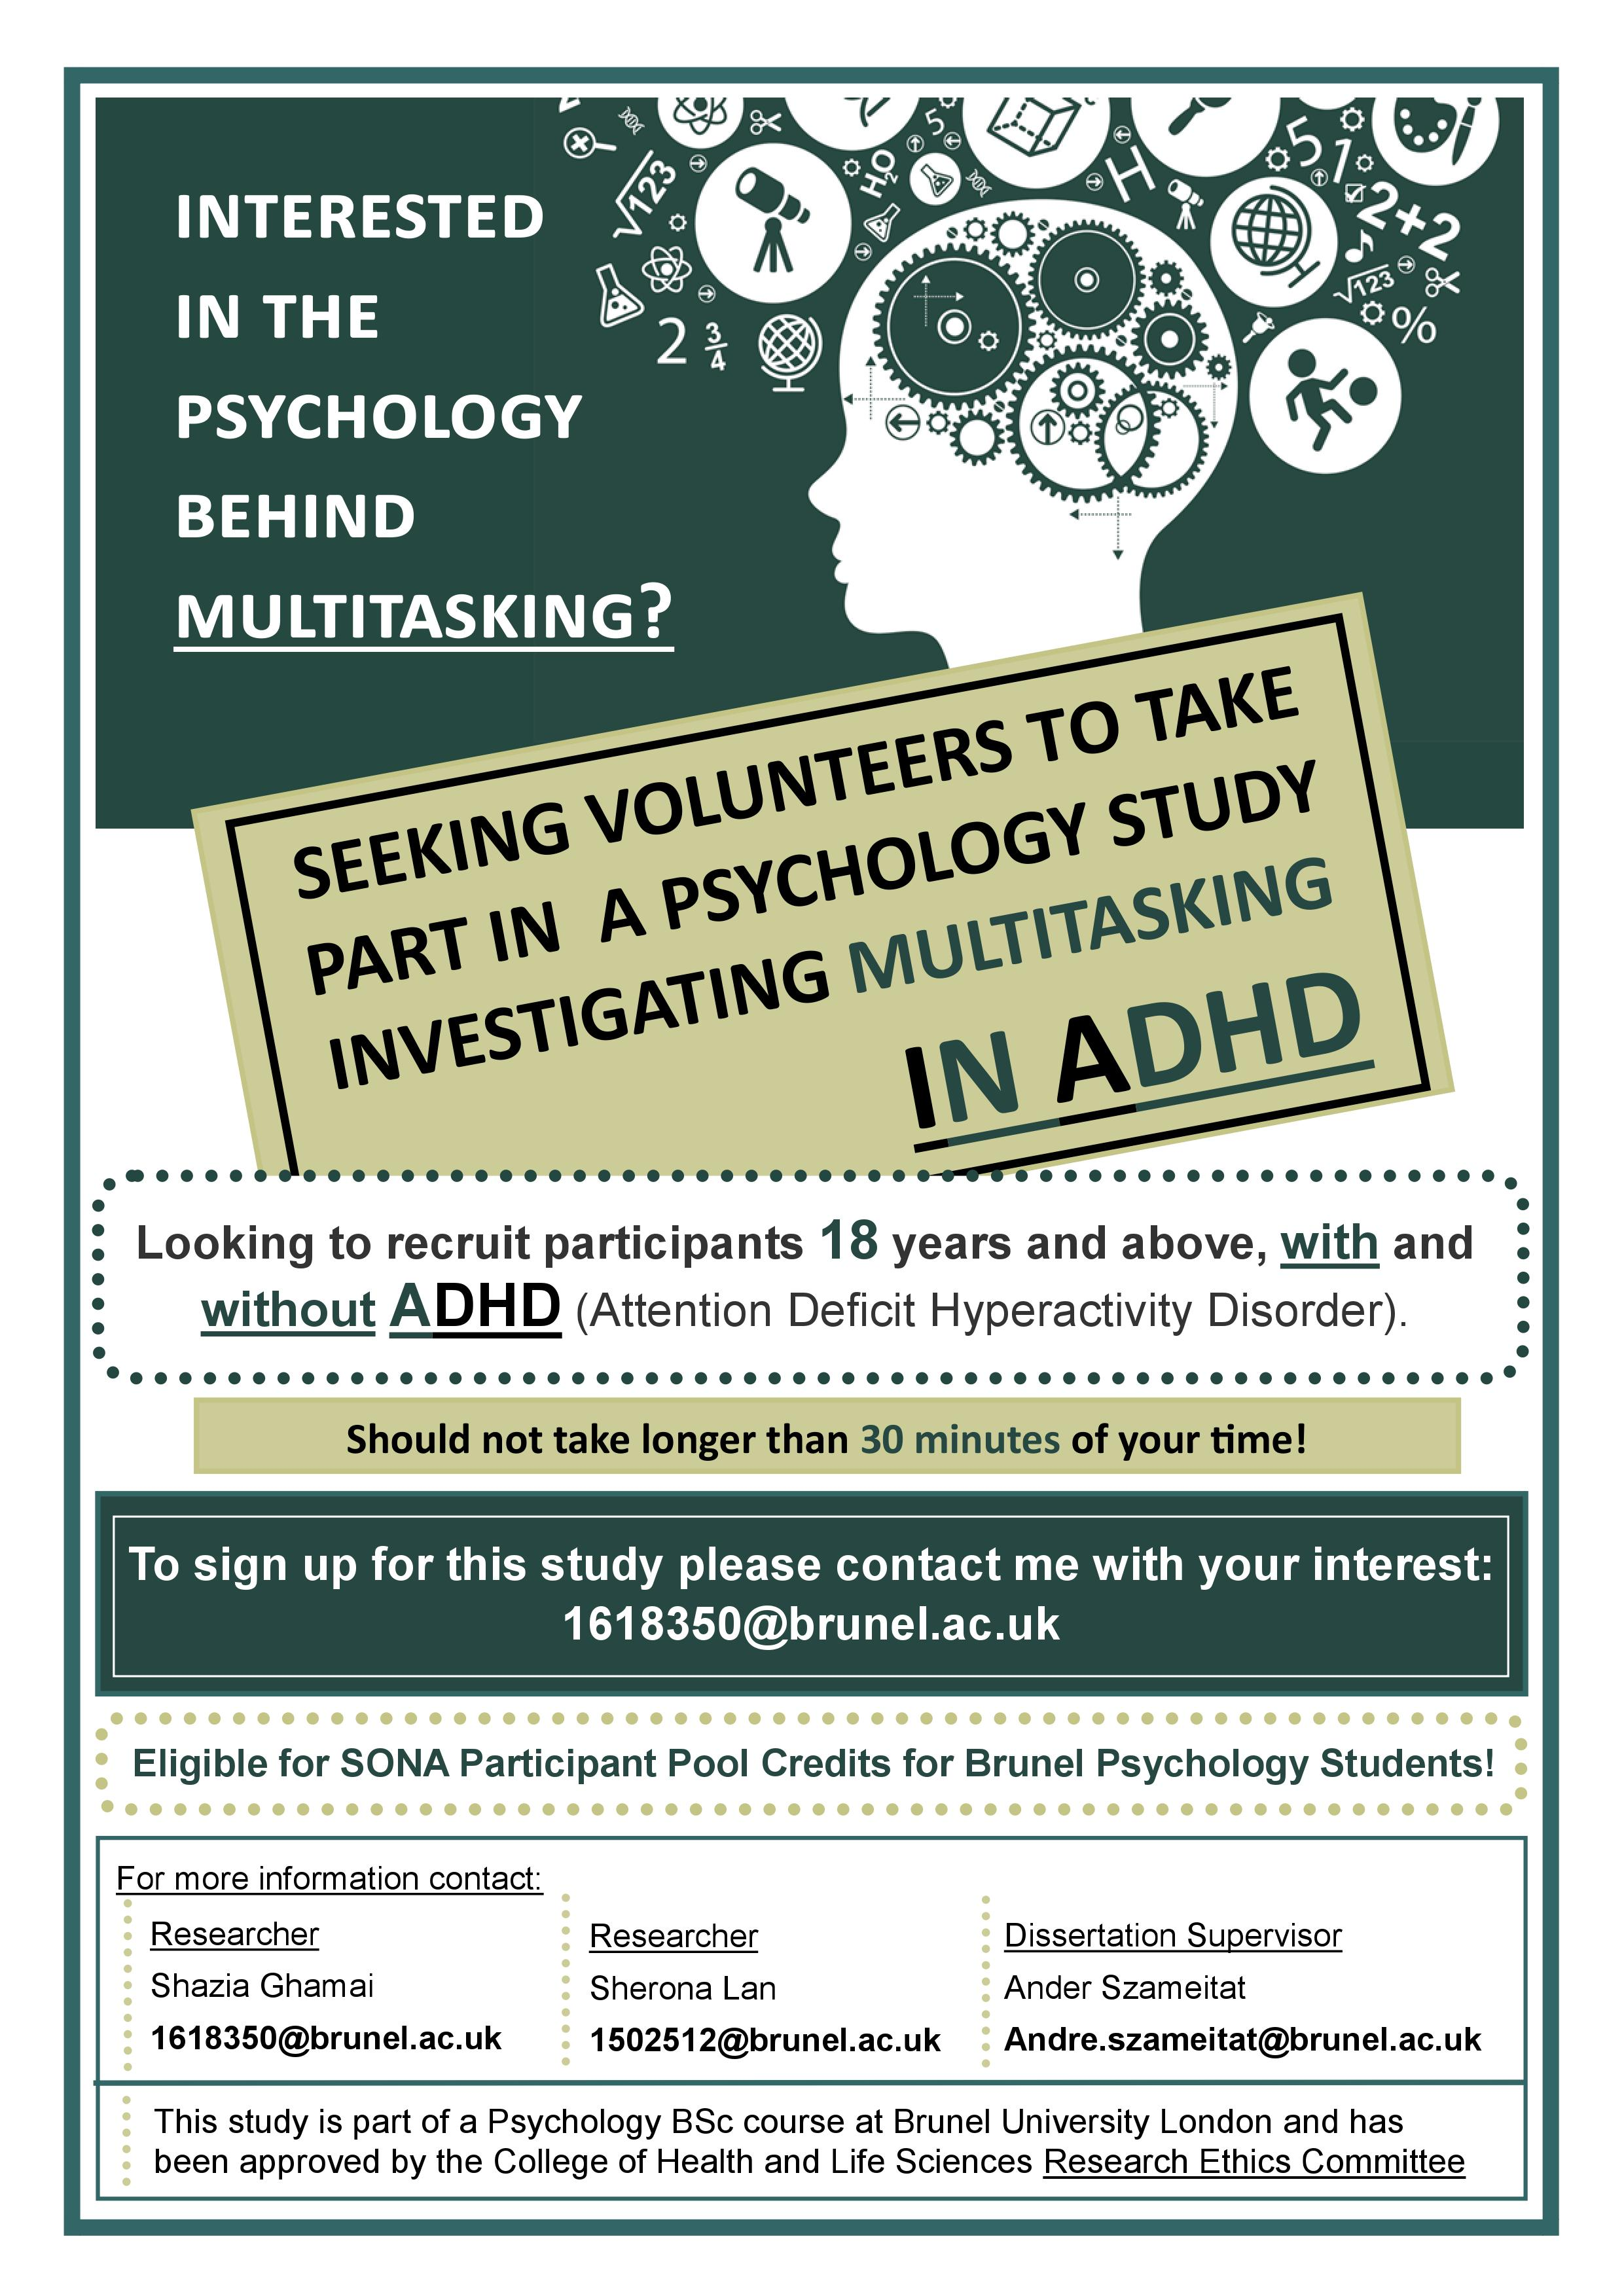 Brunel_ADHD_Research_Study